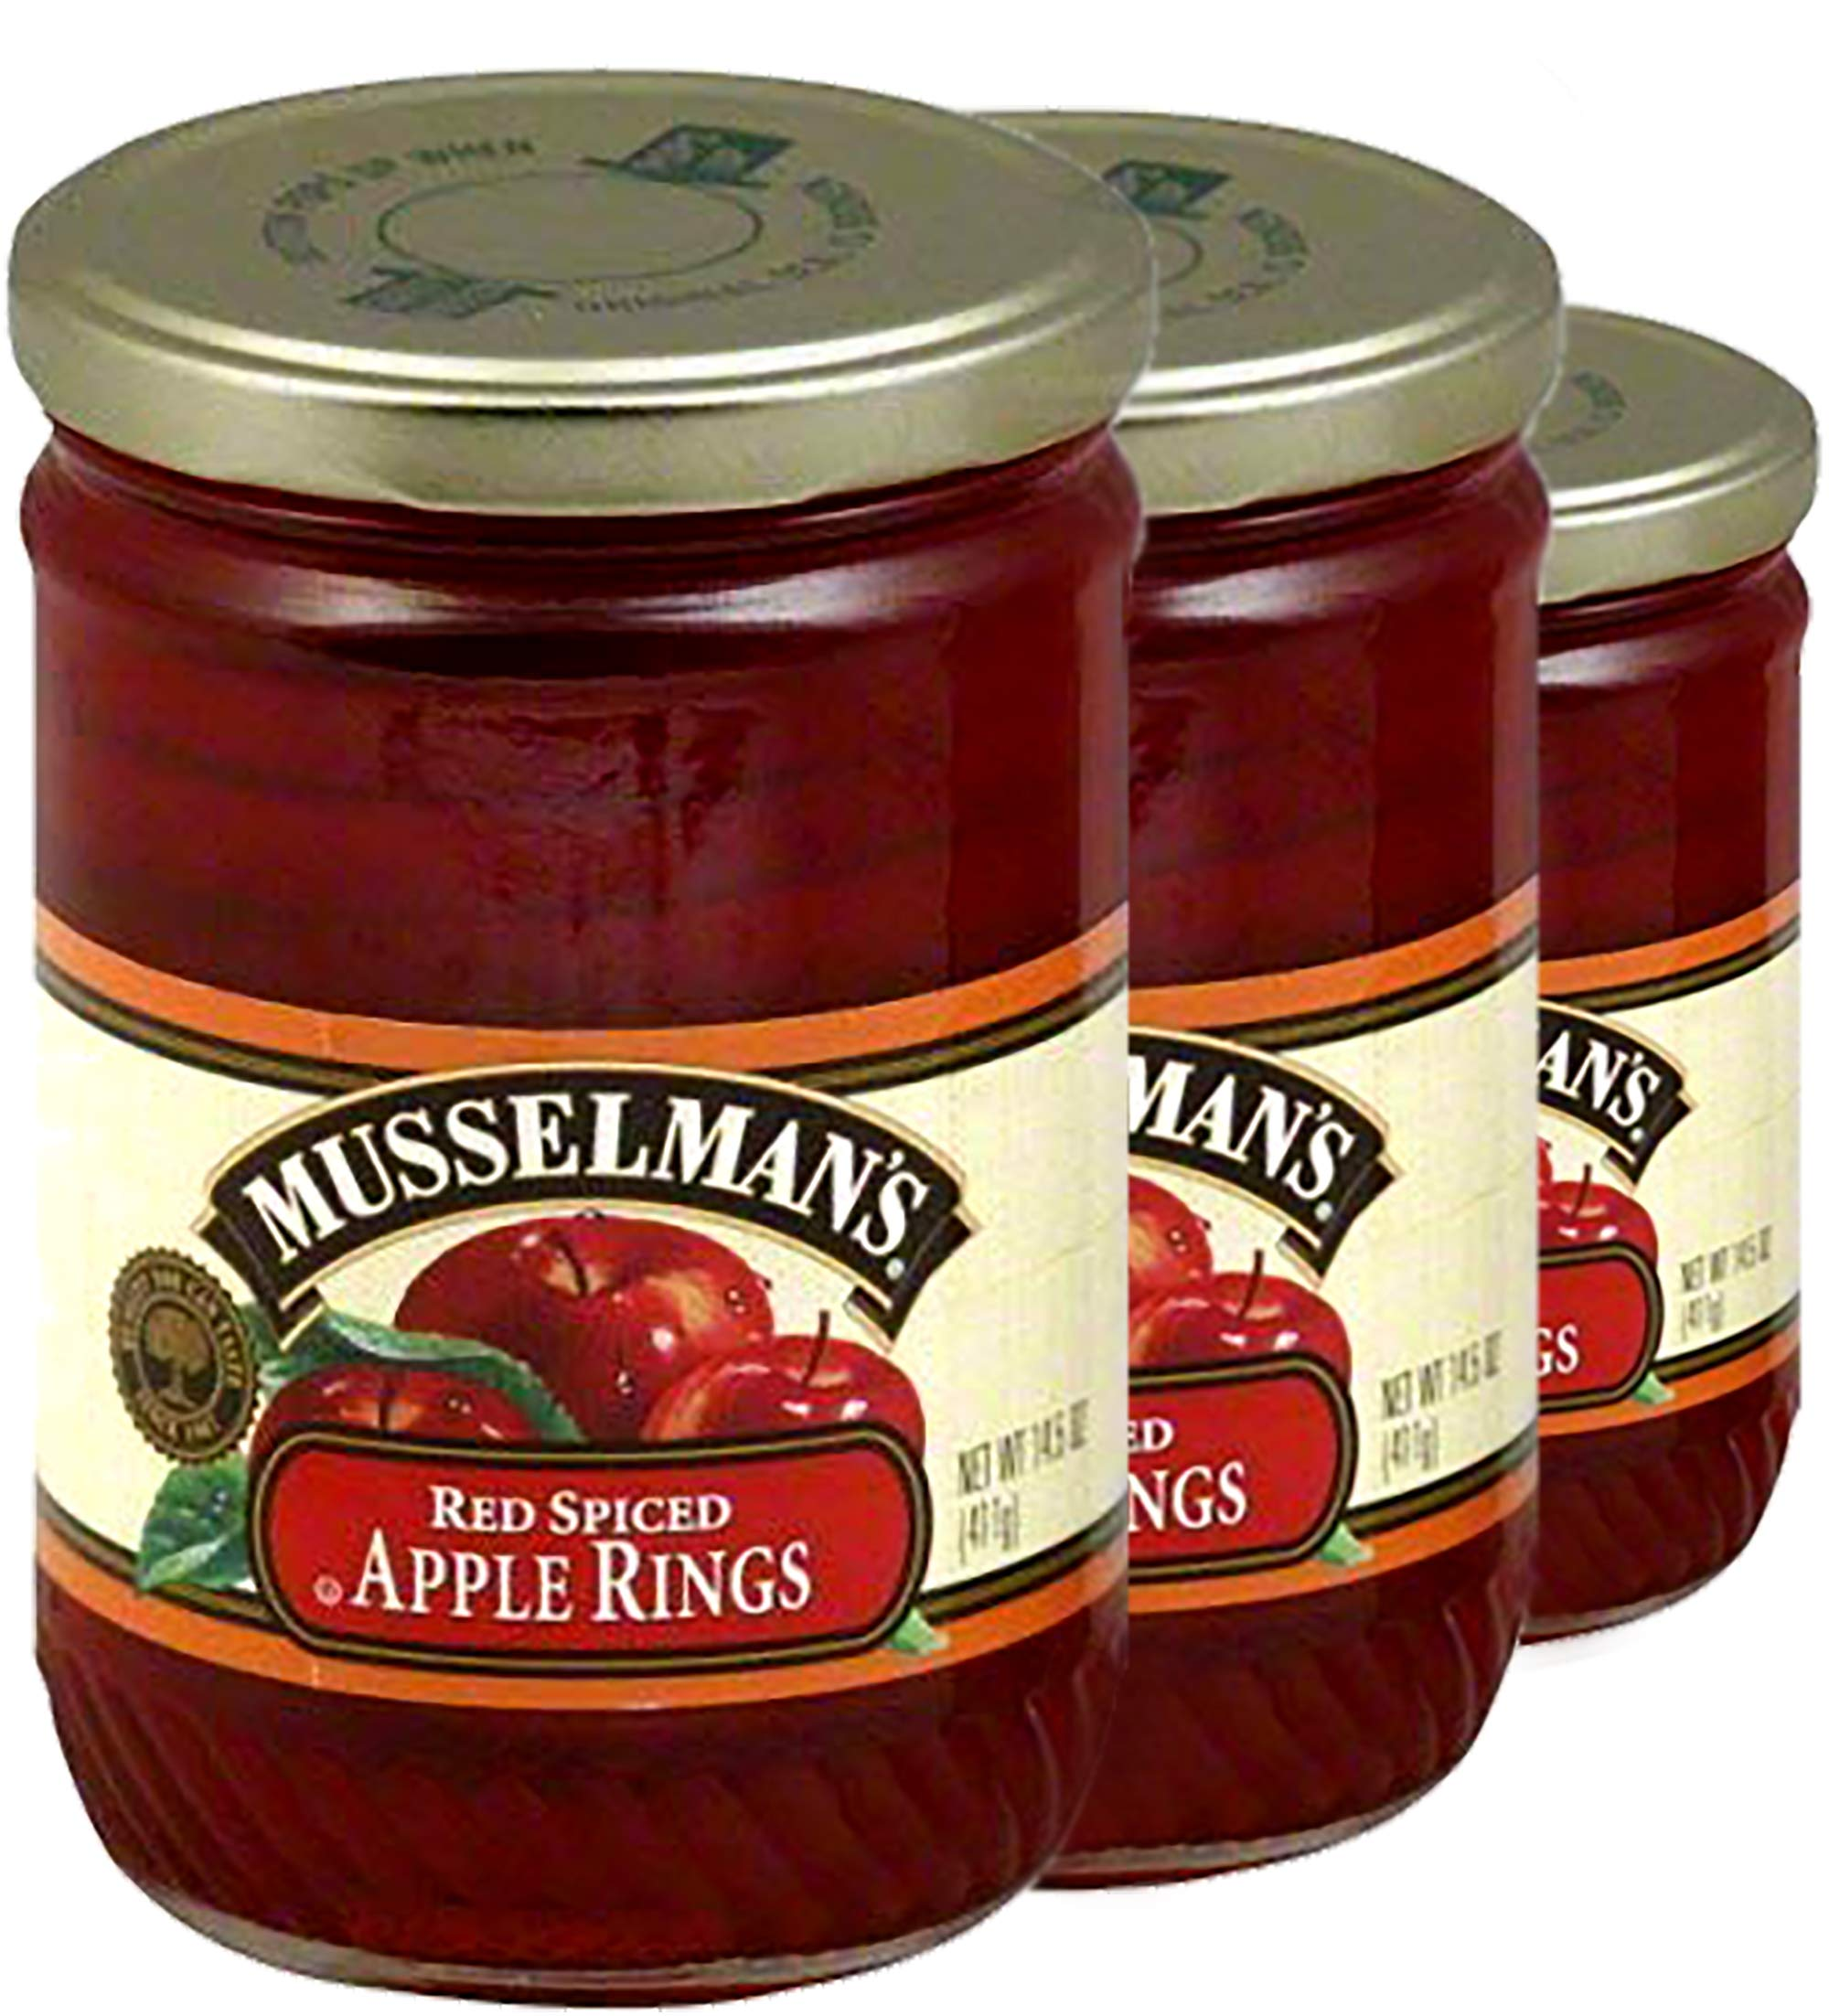 Musselman's Red Spiced Apple Rings, 3 Pack